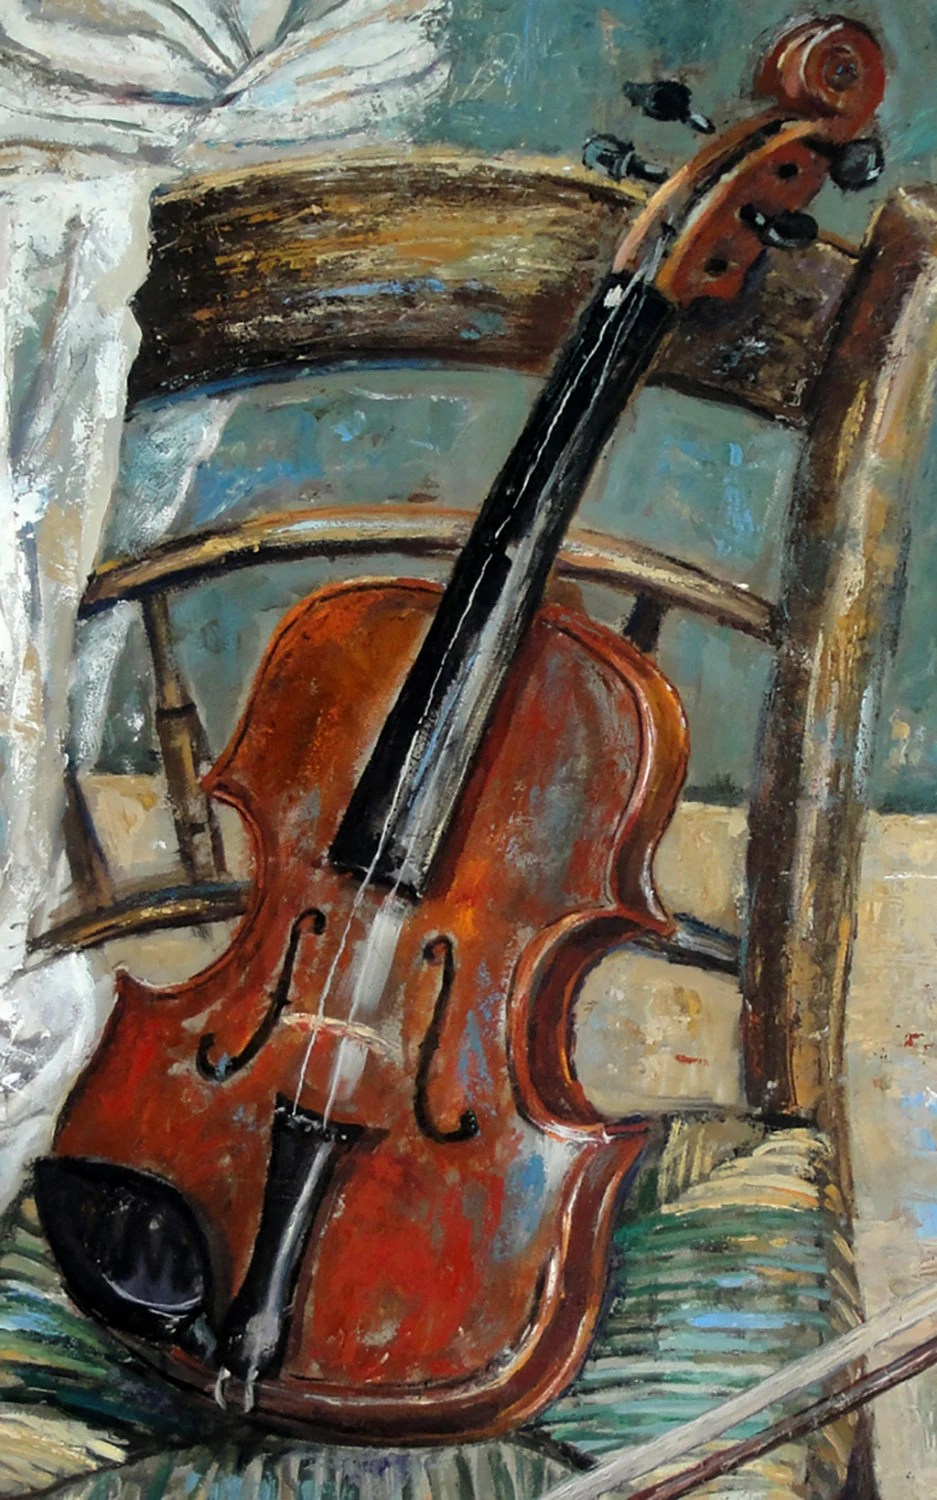 Cuadros De Violines Still Life Oil Painting Original 'violin On Chair'. By